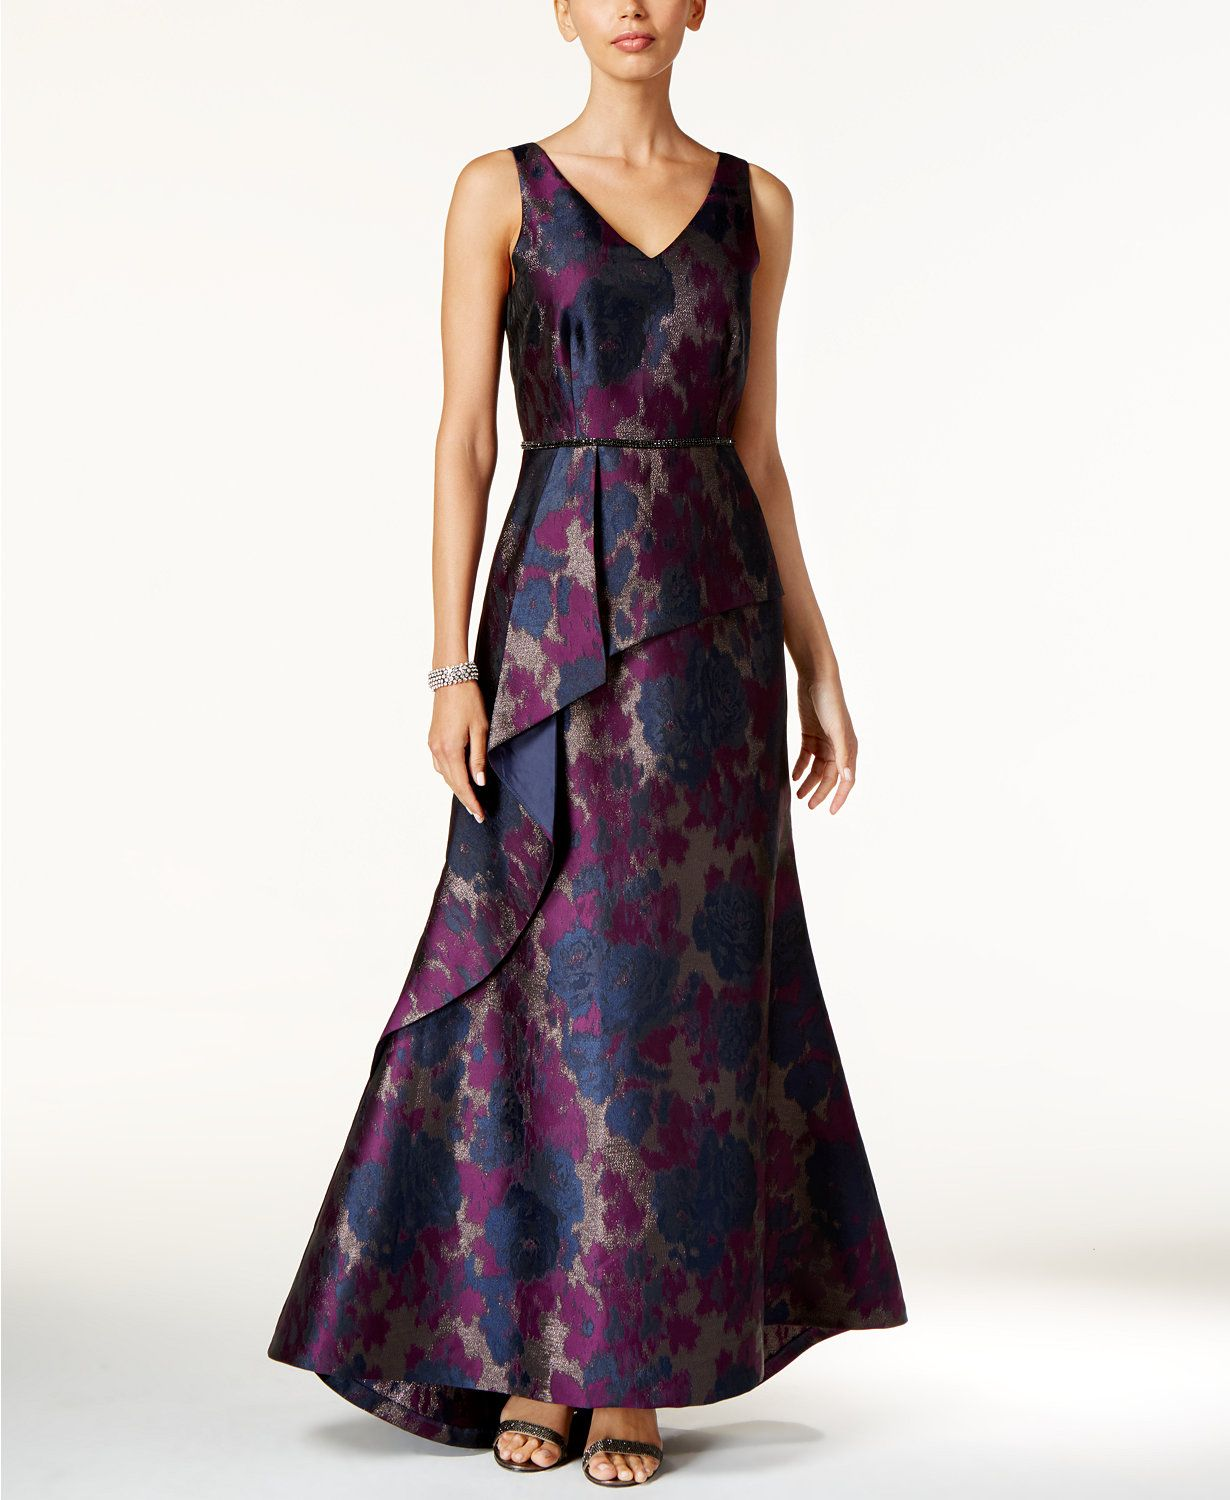 Macy S Shop Fashion Clothing Accessories Official Site Macys Com A Line Gown Floral Evening Gown Formal Dresses For Women [ 1500 x 1230 Pixel ]